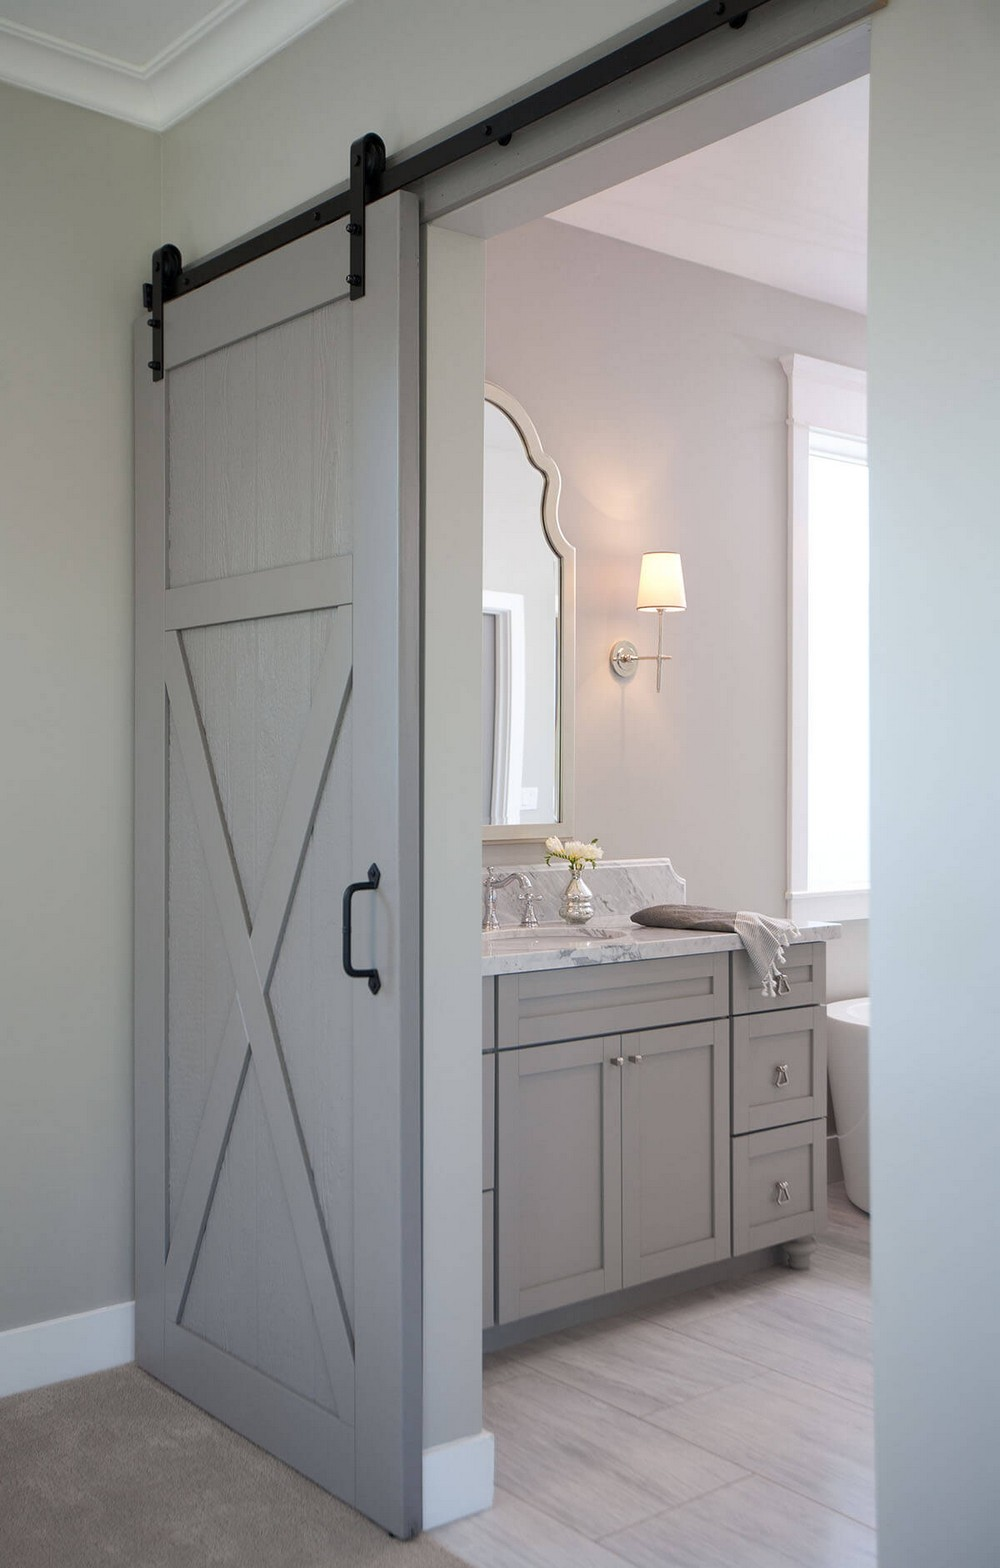 How to Make an Entrance Bathroom Ideas with Imposing Door Hardware 3 bathroom ideas How to Make an Entrance: Bathroom Ideas with Imposing Door Hardware How to Make an Entrance Bathroom Ideas with Imposing Door Hardware 3